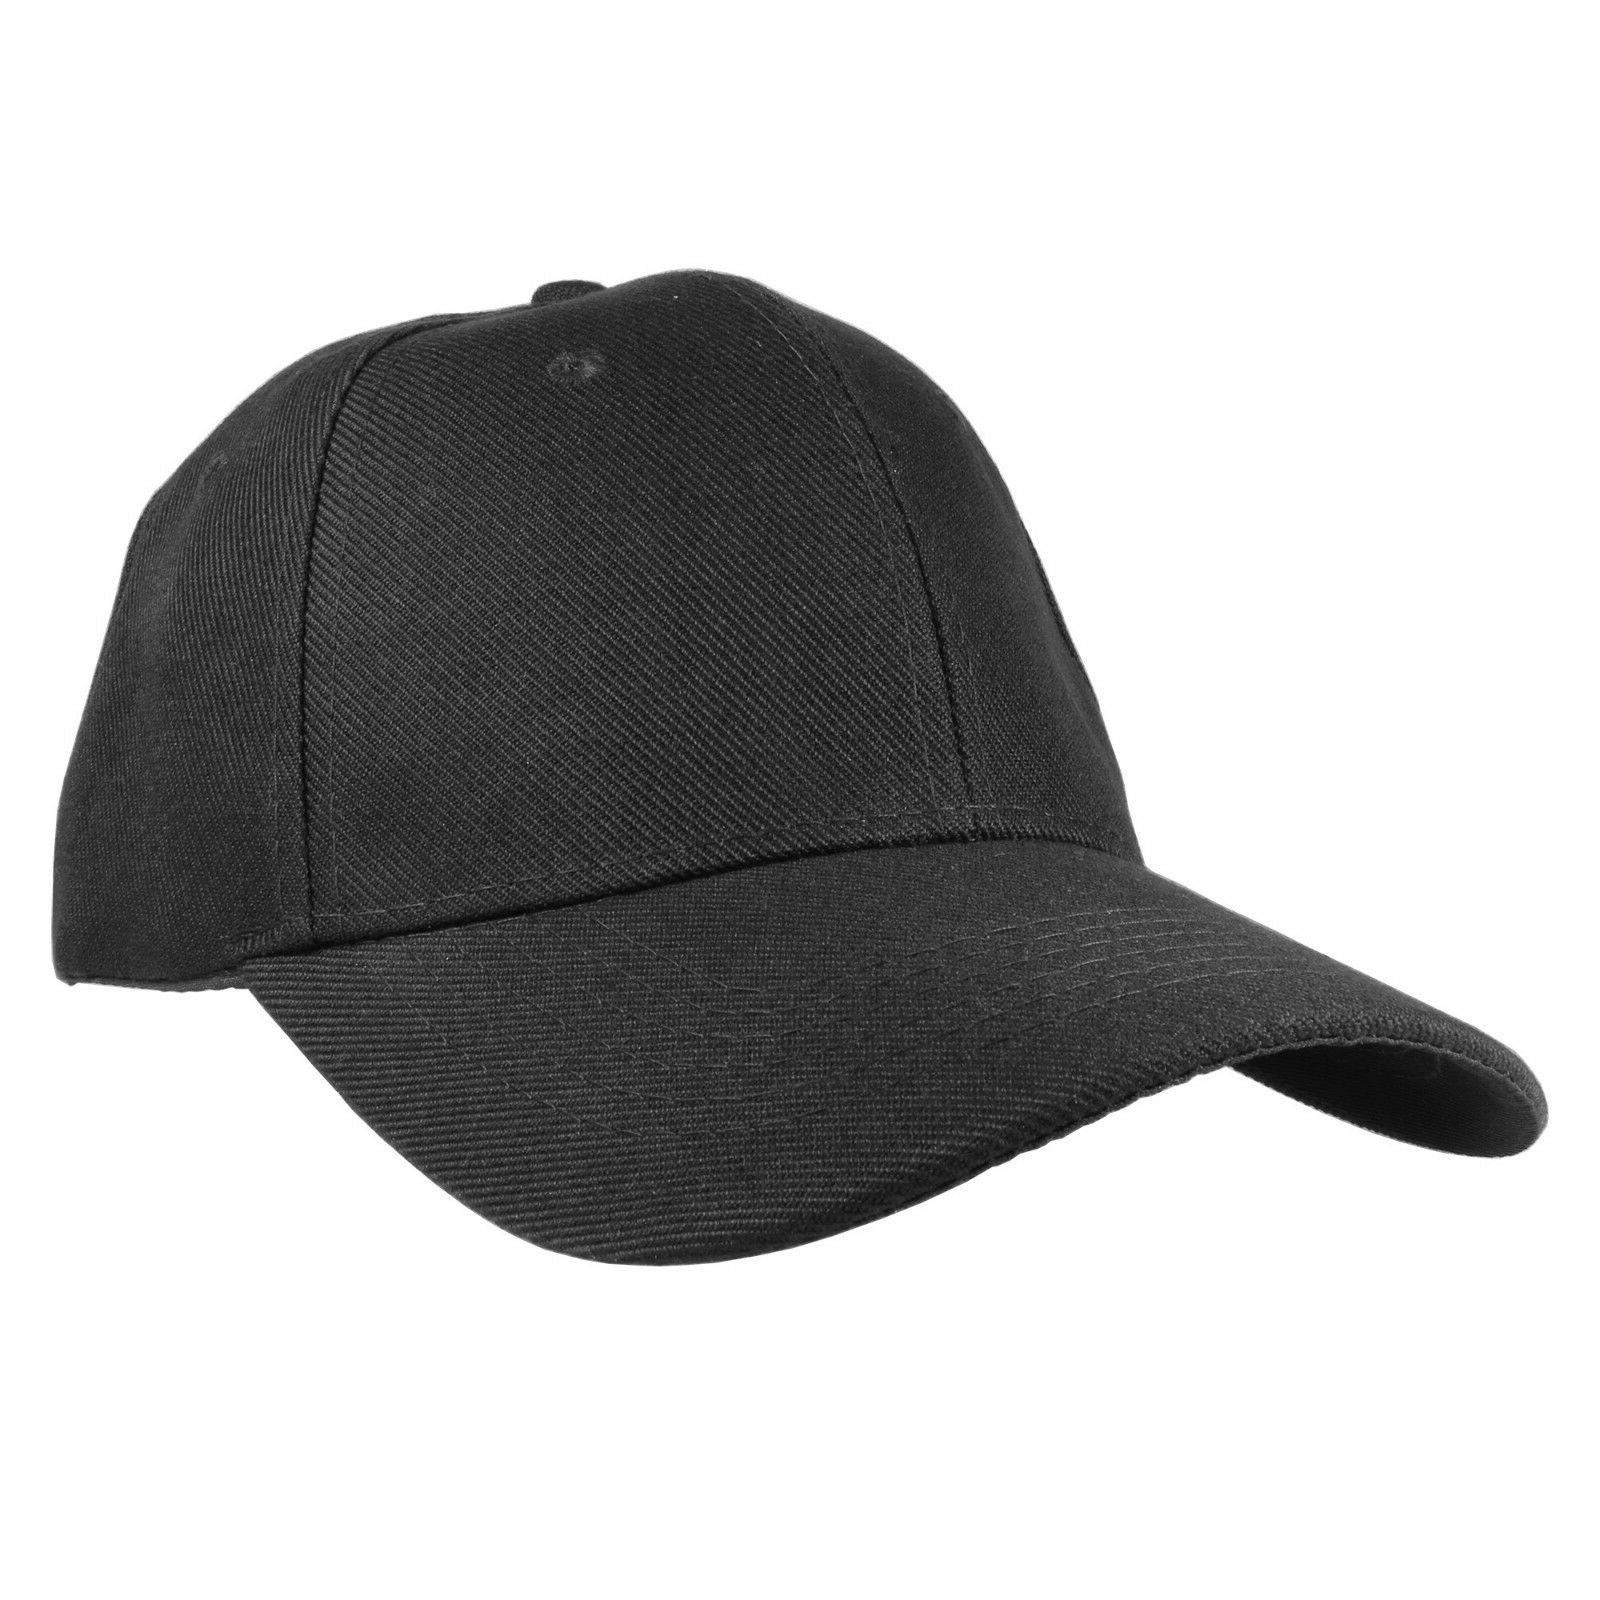 Plain Solid Baseball Cap Hats wholesale lot 12pcs